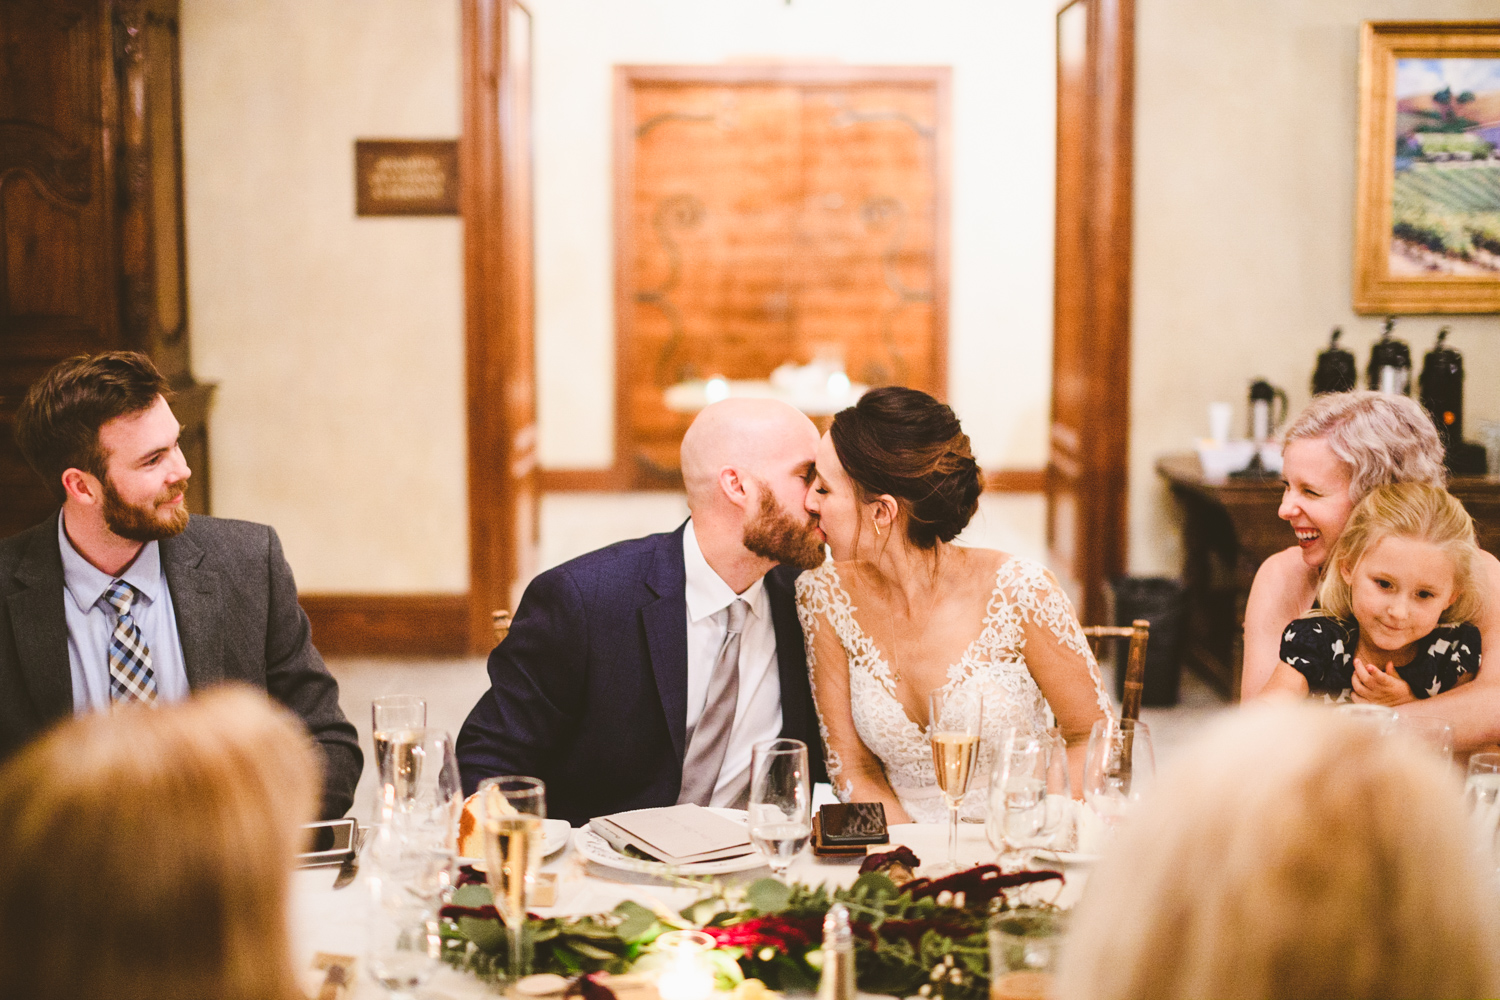 037 - bride and groom share a kiss at their intimate reception.jpg